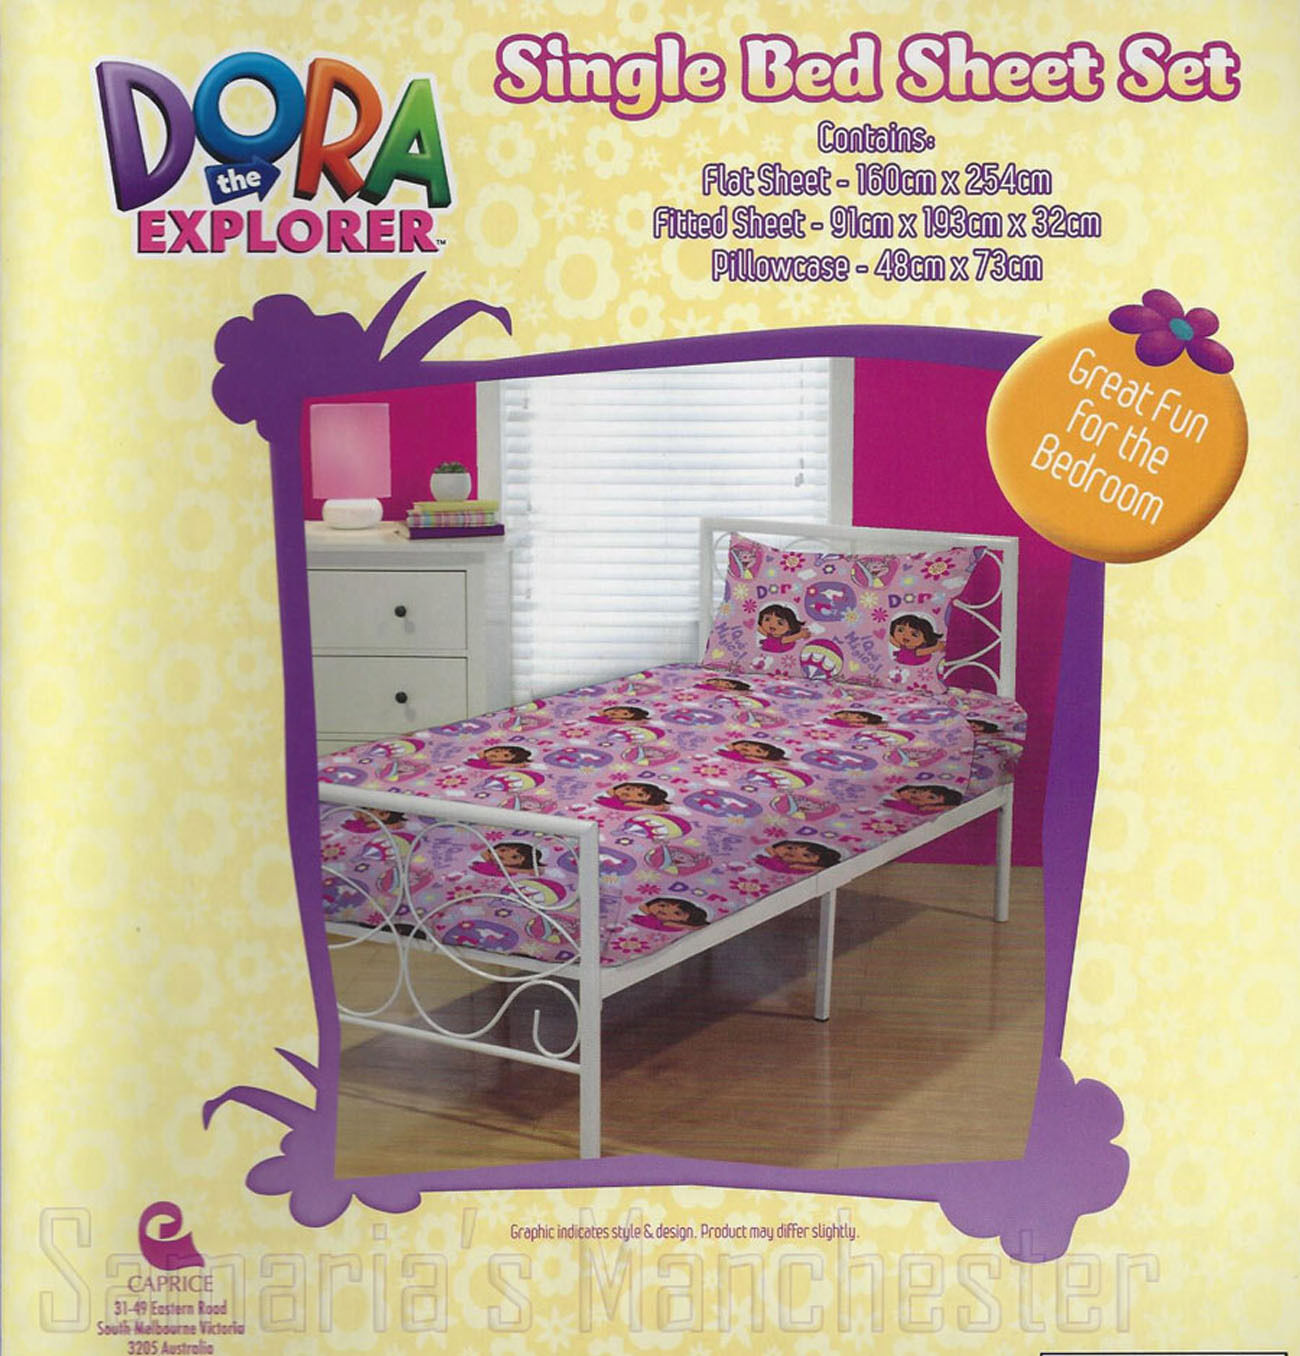 Dora the Explorer KIDS Sheet SetNickelodeonHot Air BalloonsSingle